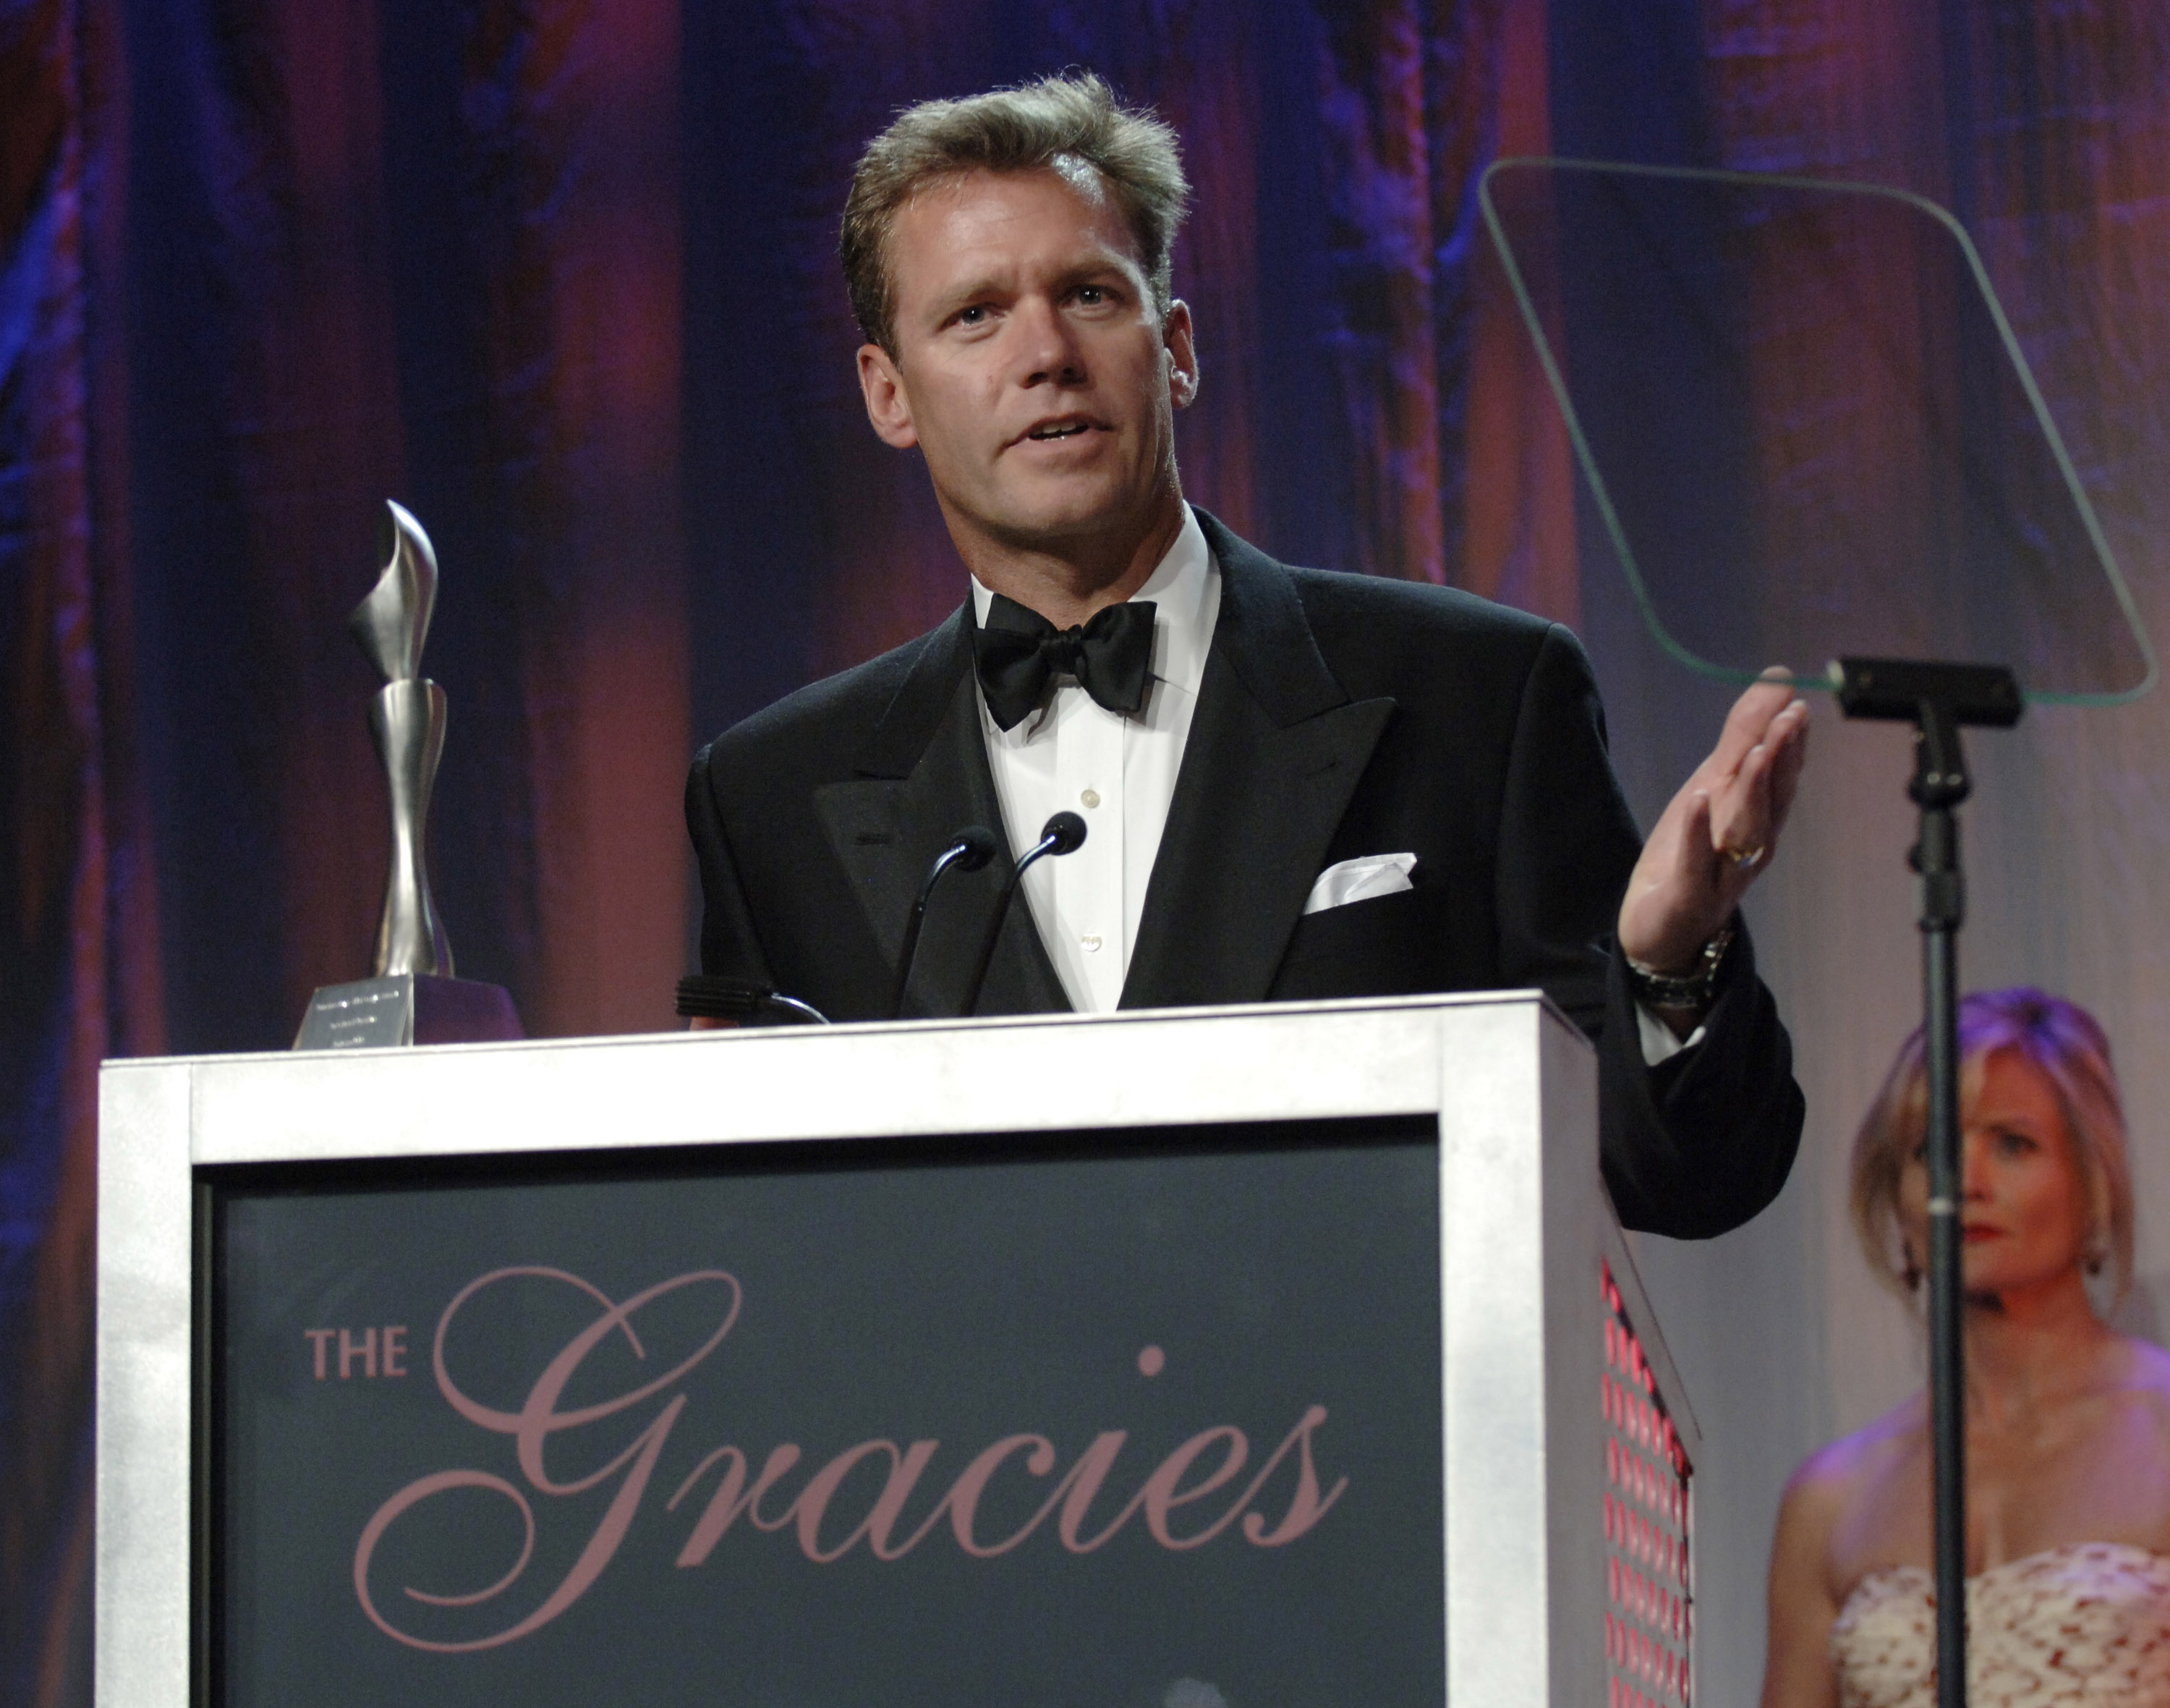 Chris Hansen, accepting award for Outstanding Documentary on June 19, 2006 at the Gracie Allen awards.